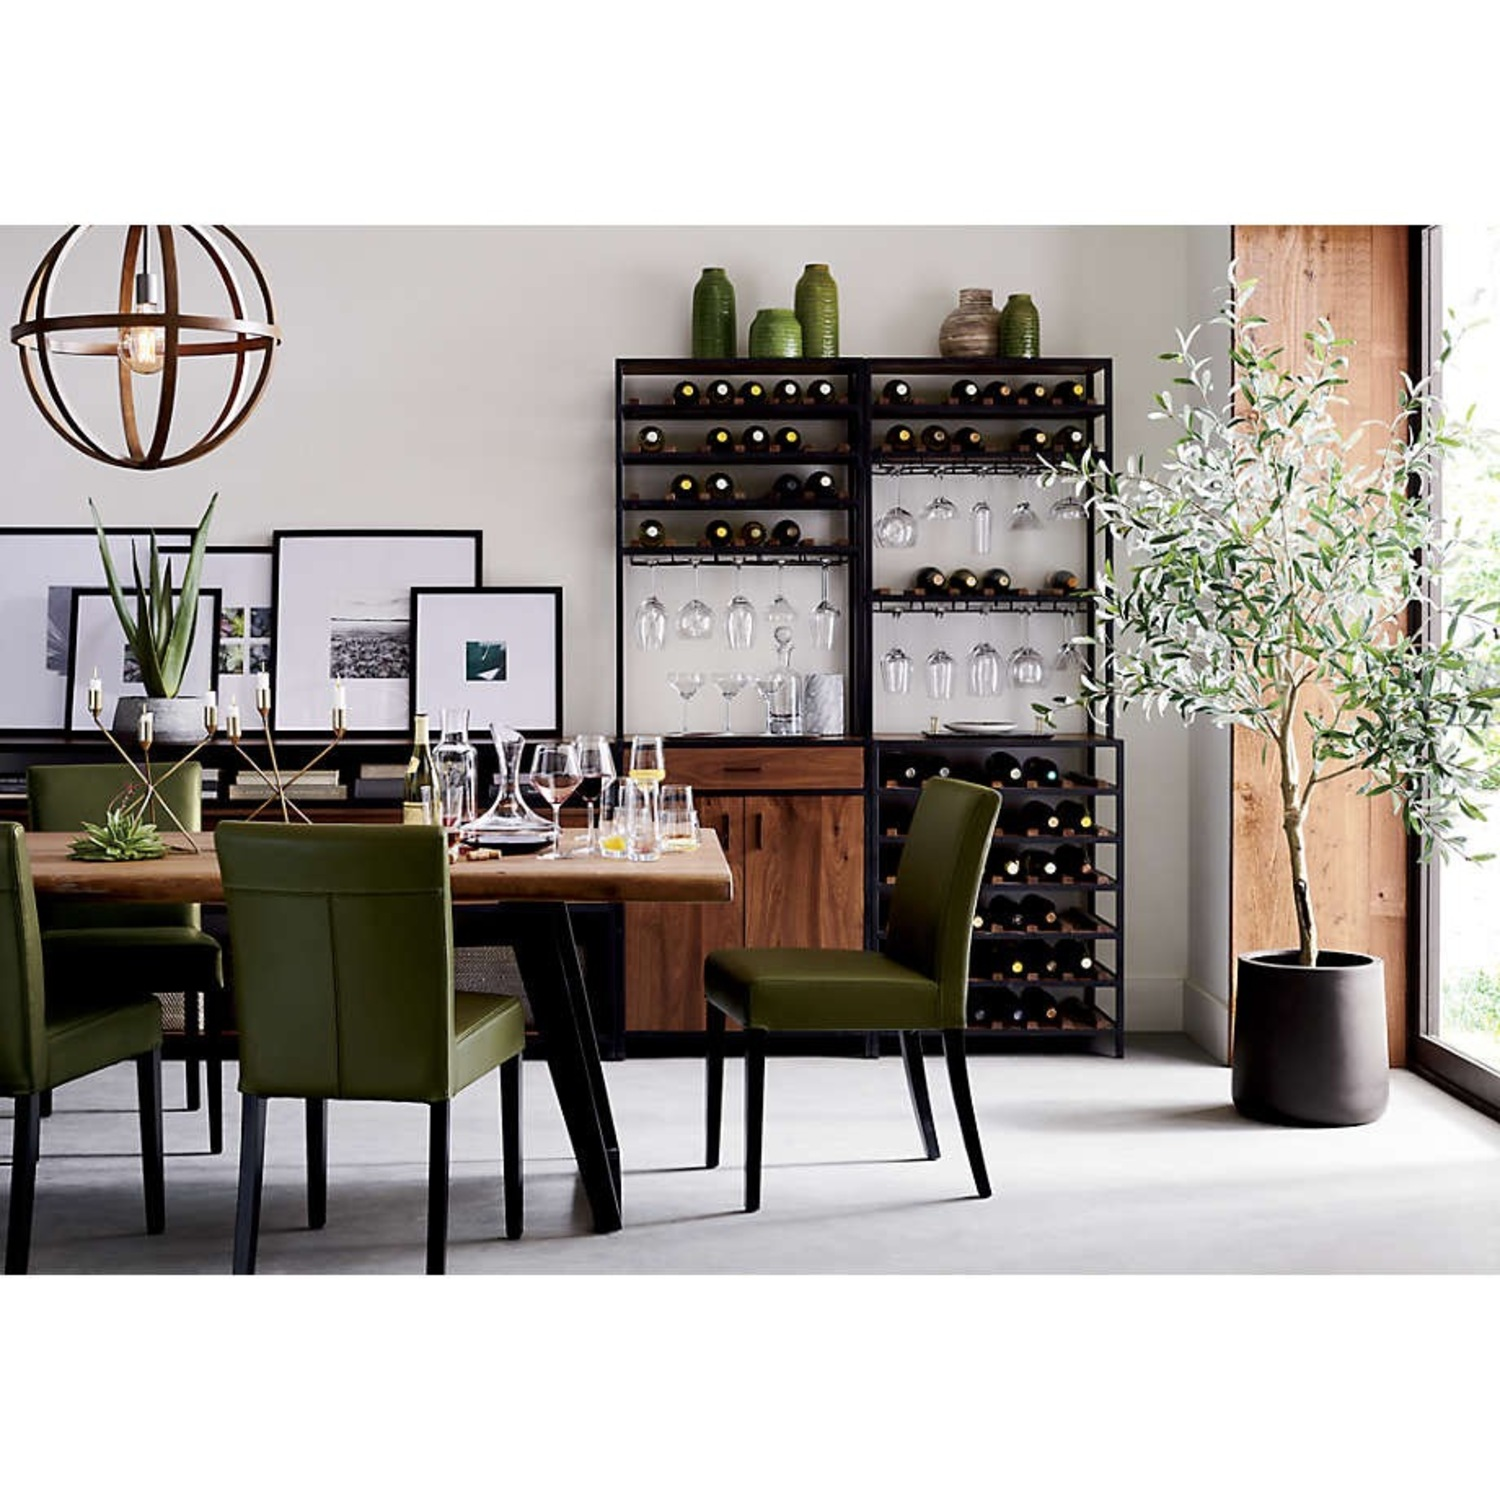 Crate & Barrel 7 Foot Faux Olive Tree - image-5